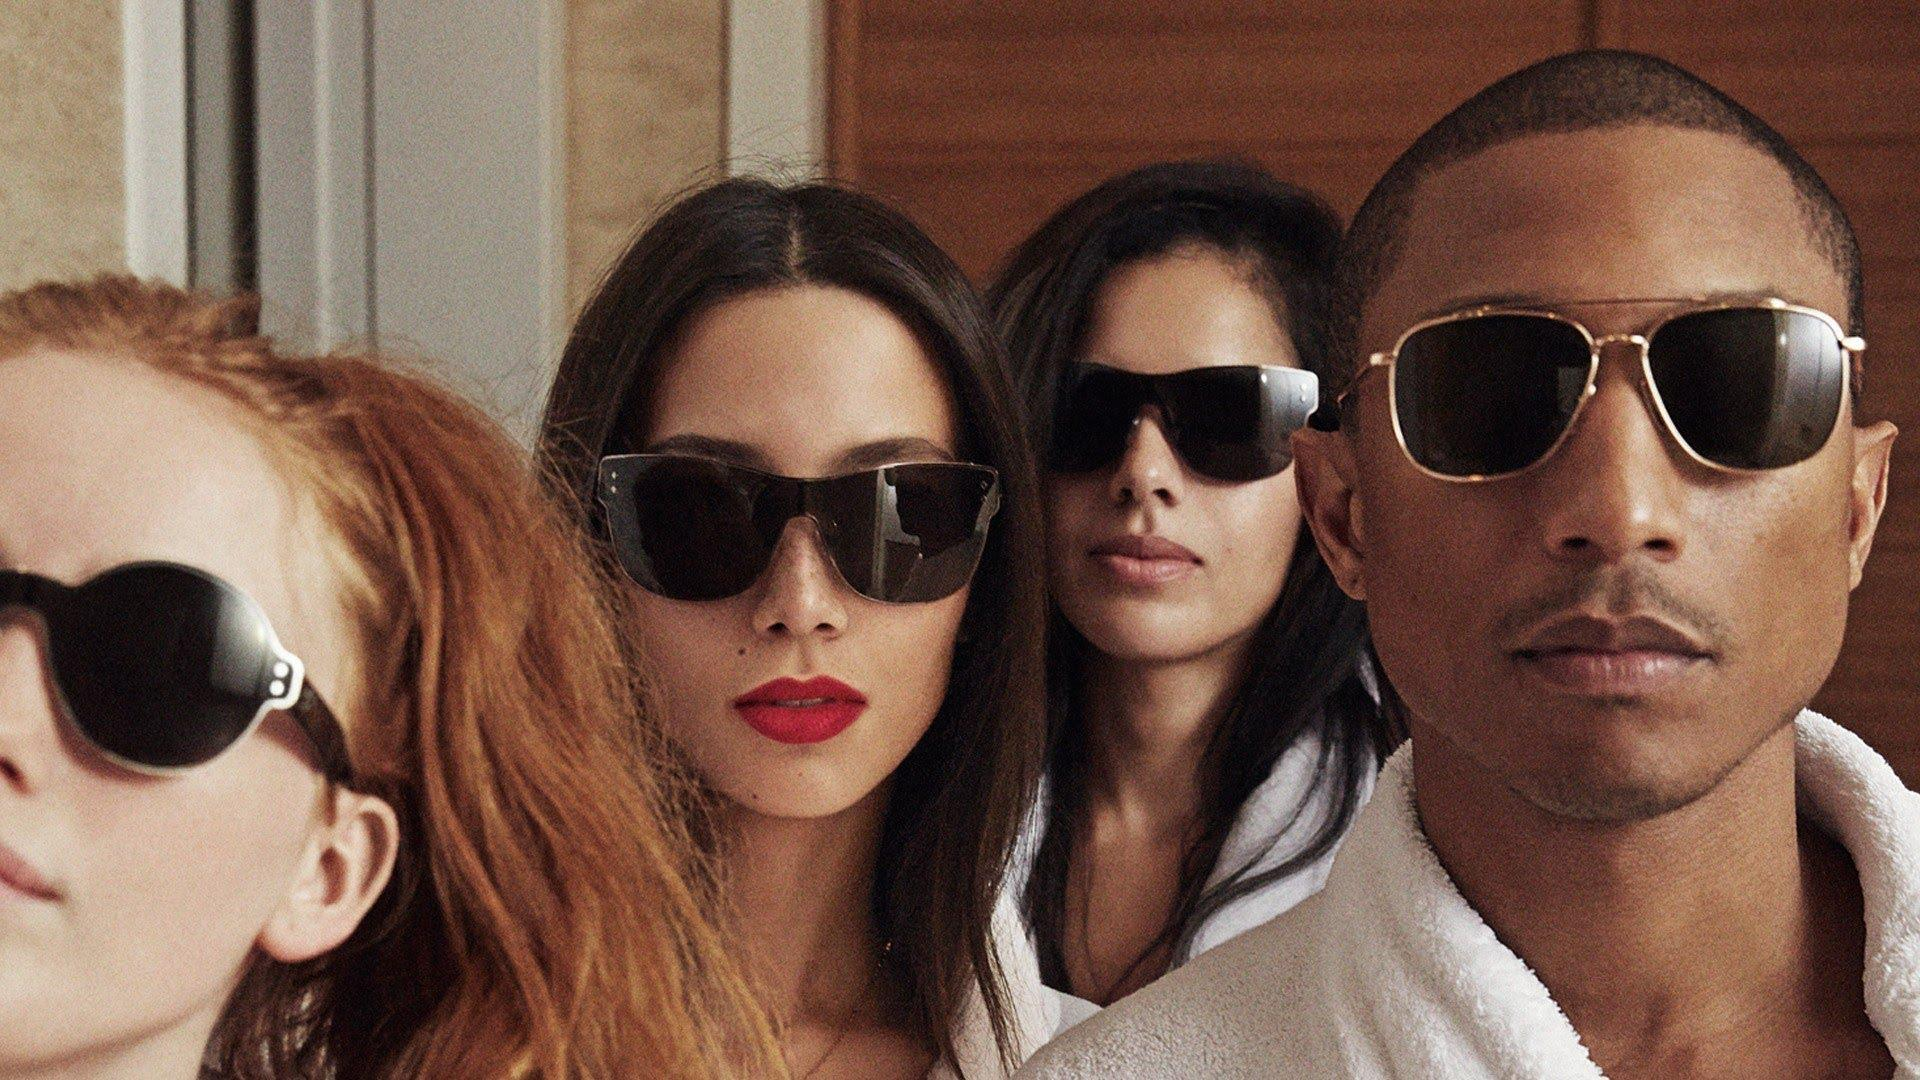 Pharrell Williams whips up another hit with 'G I R L'